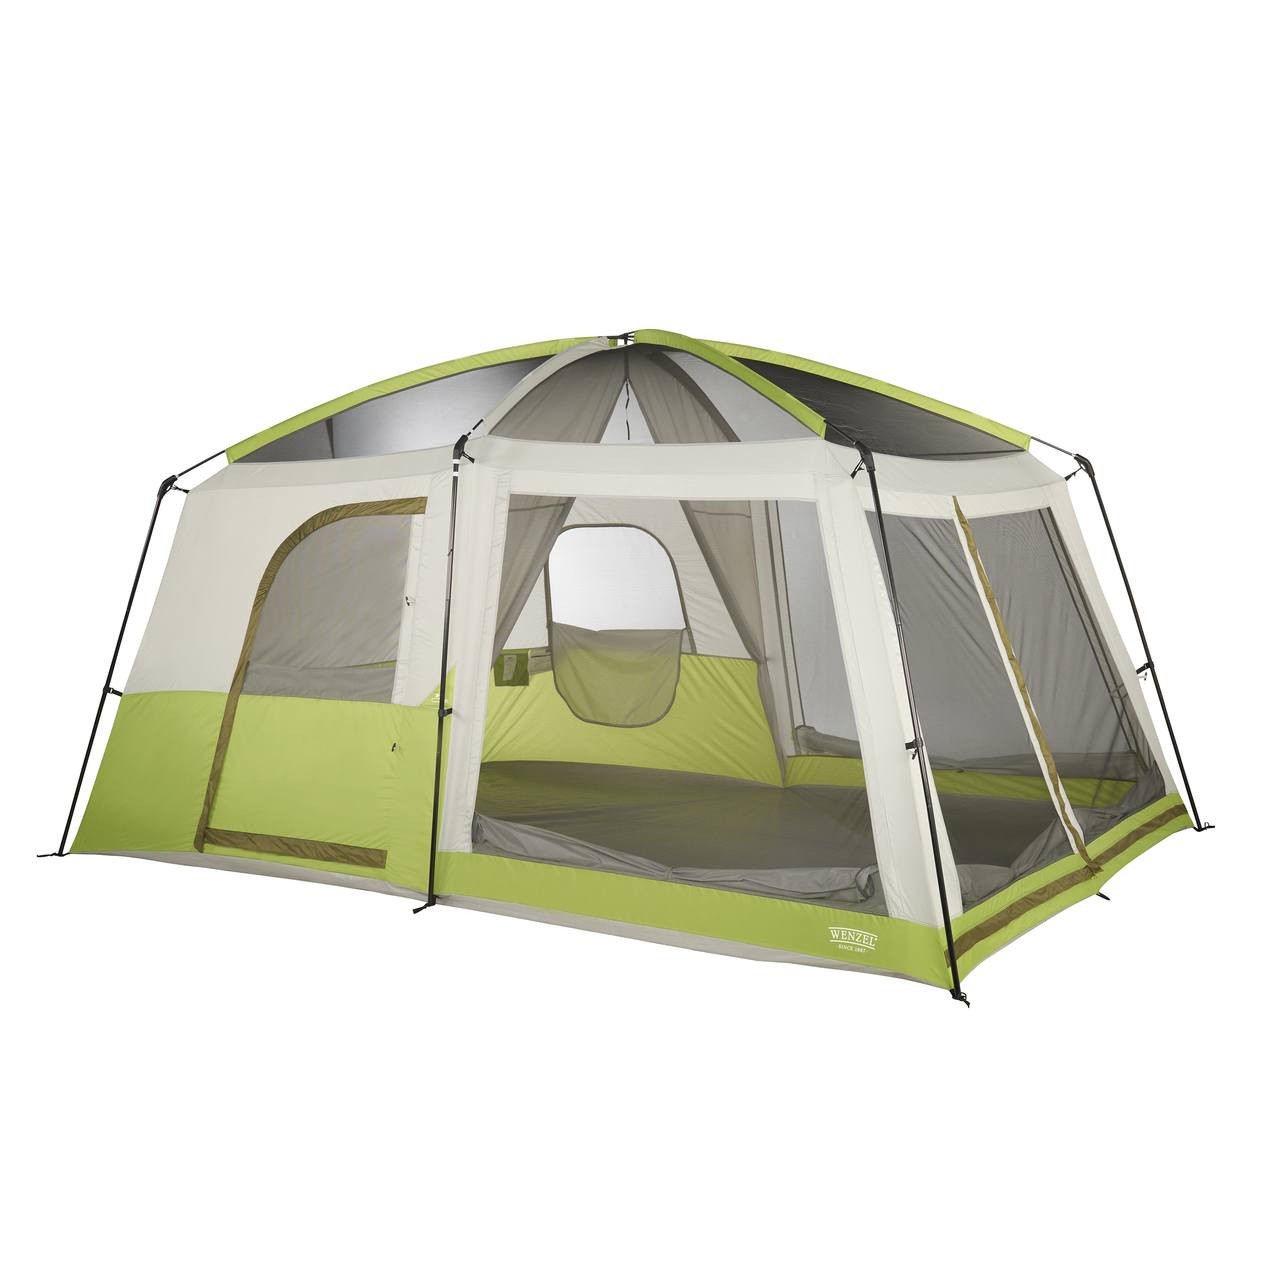 Wenzel Eldorado 8 tent, green and tan, completely set up with the rain fly off, the inside tent doors not set up, and the inside screen windows rolled down